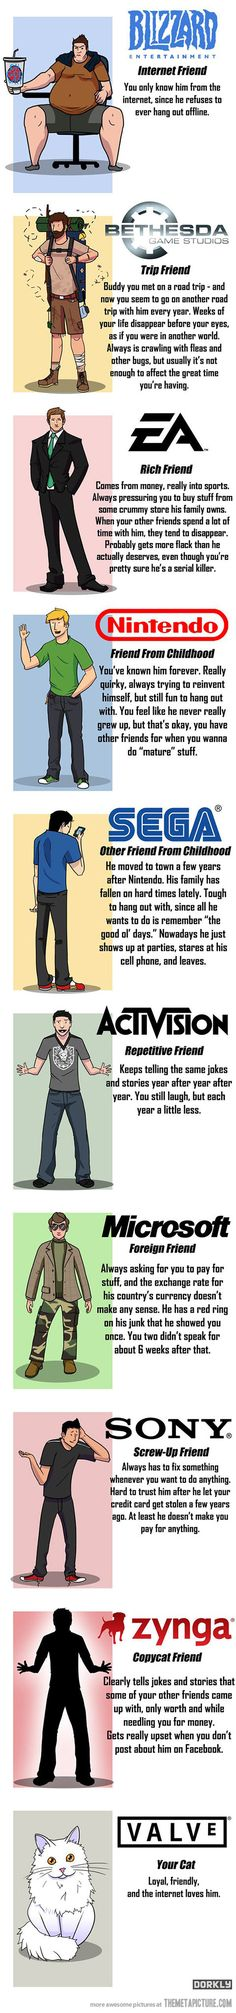 Game Consoles and Companies as Friends